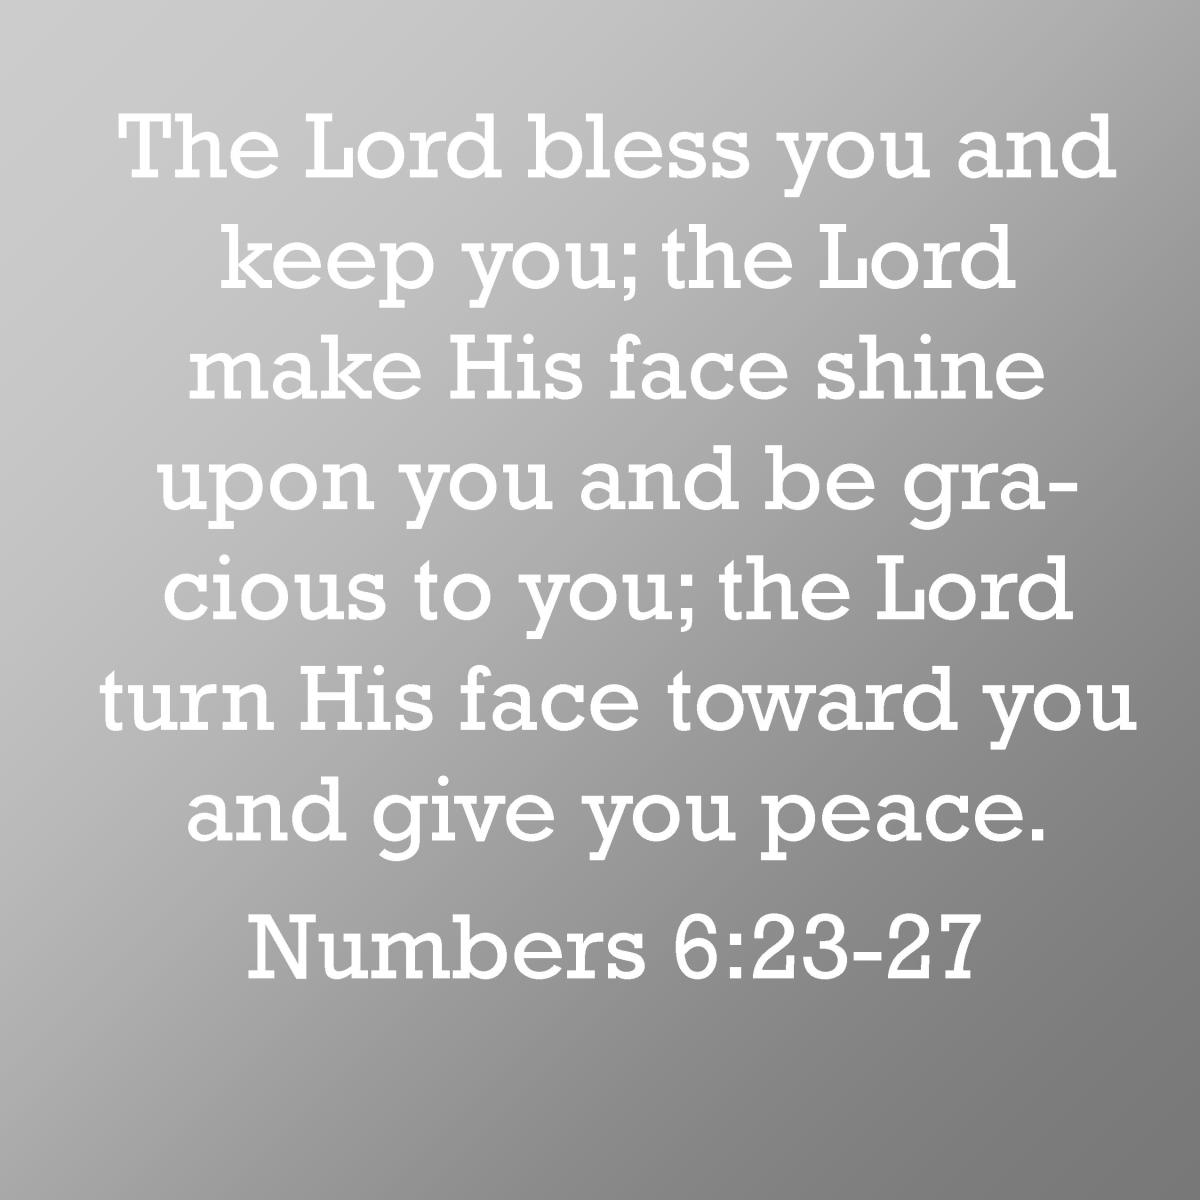 This Verse Is A Nice Way To Bestow Blessing Upon Someone As Birthday Wish